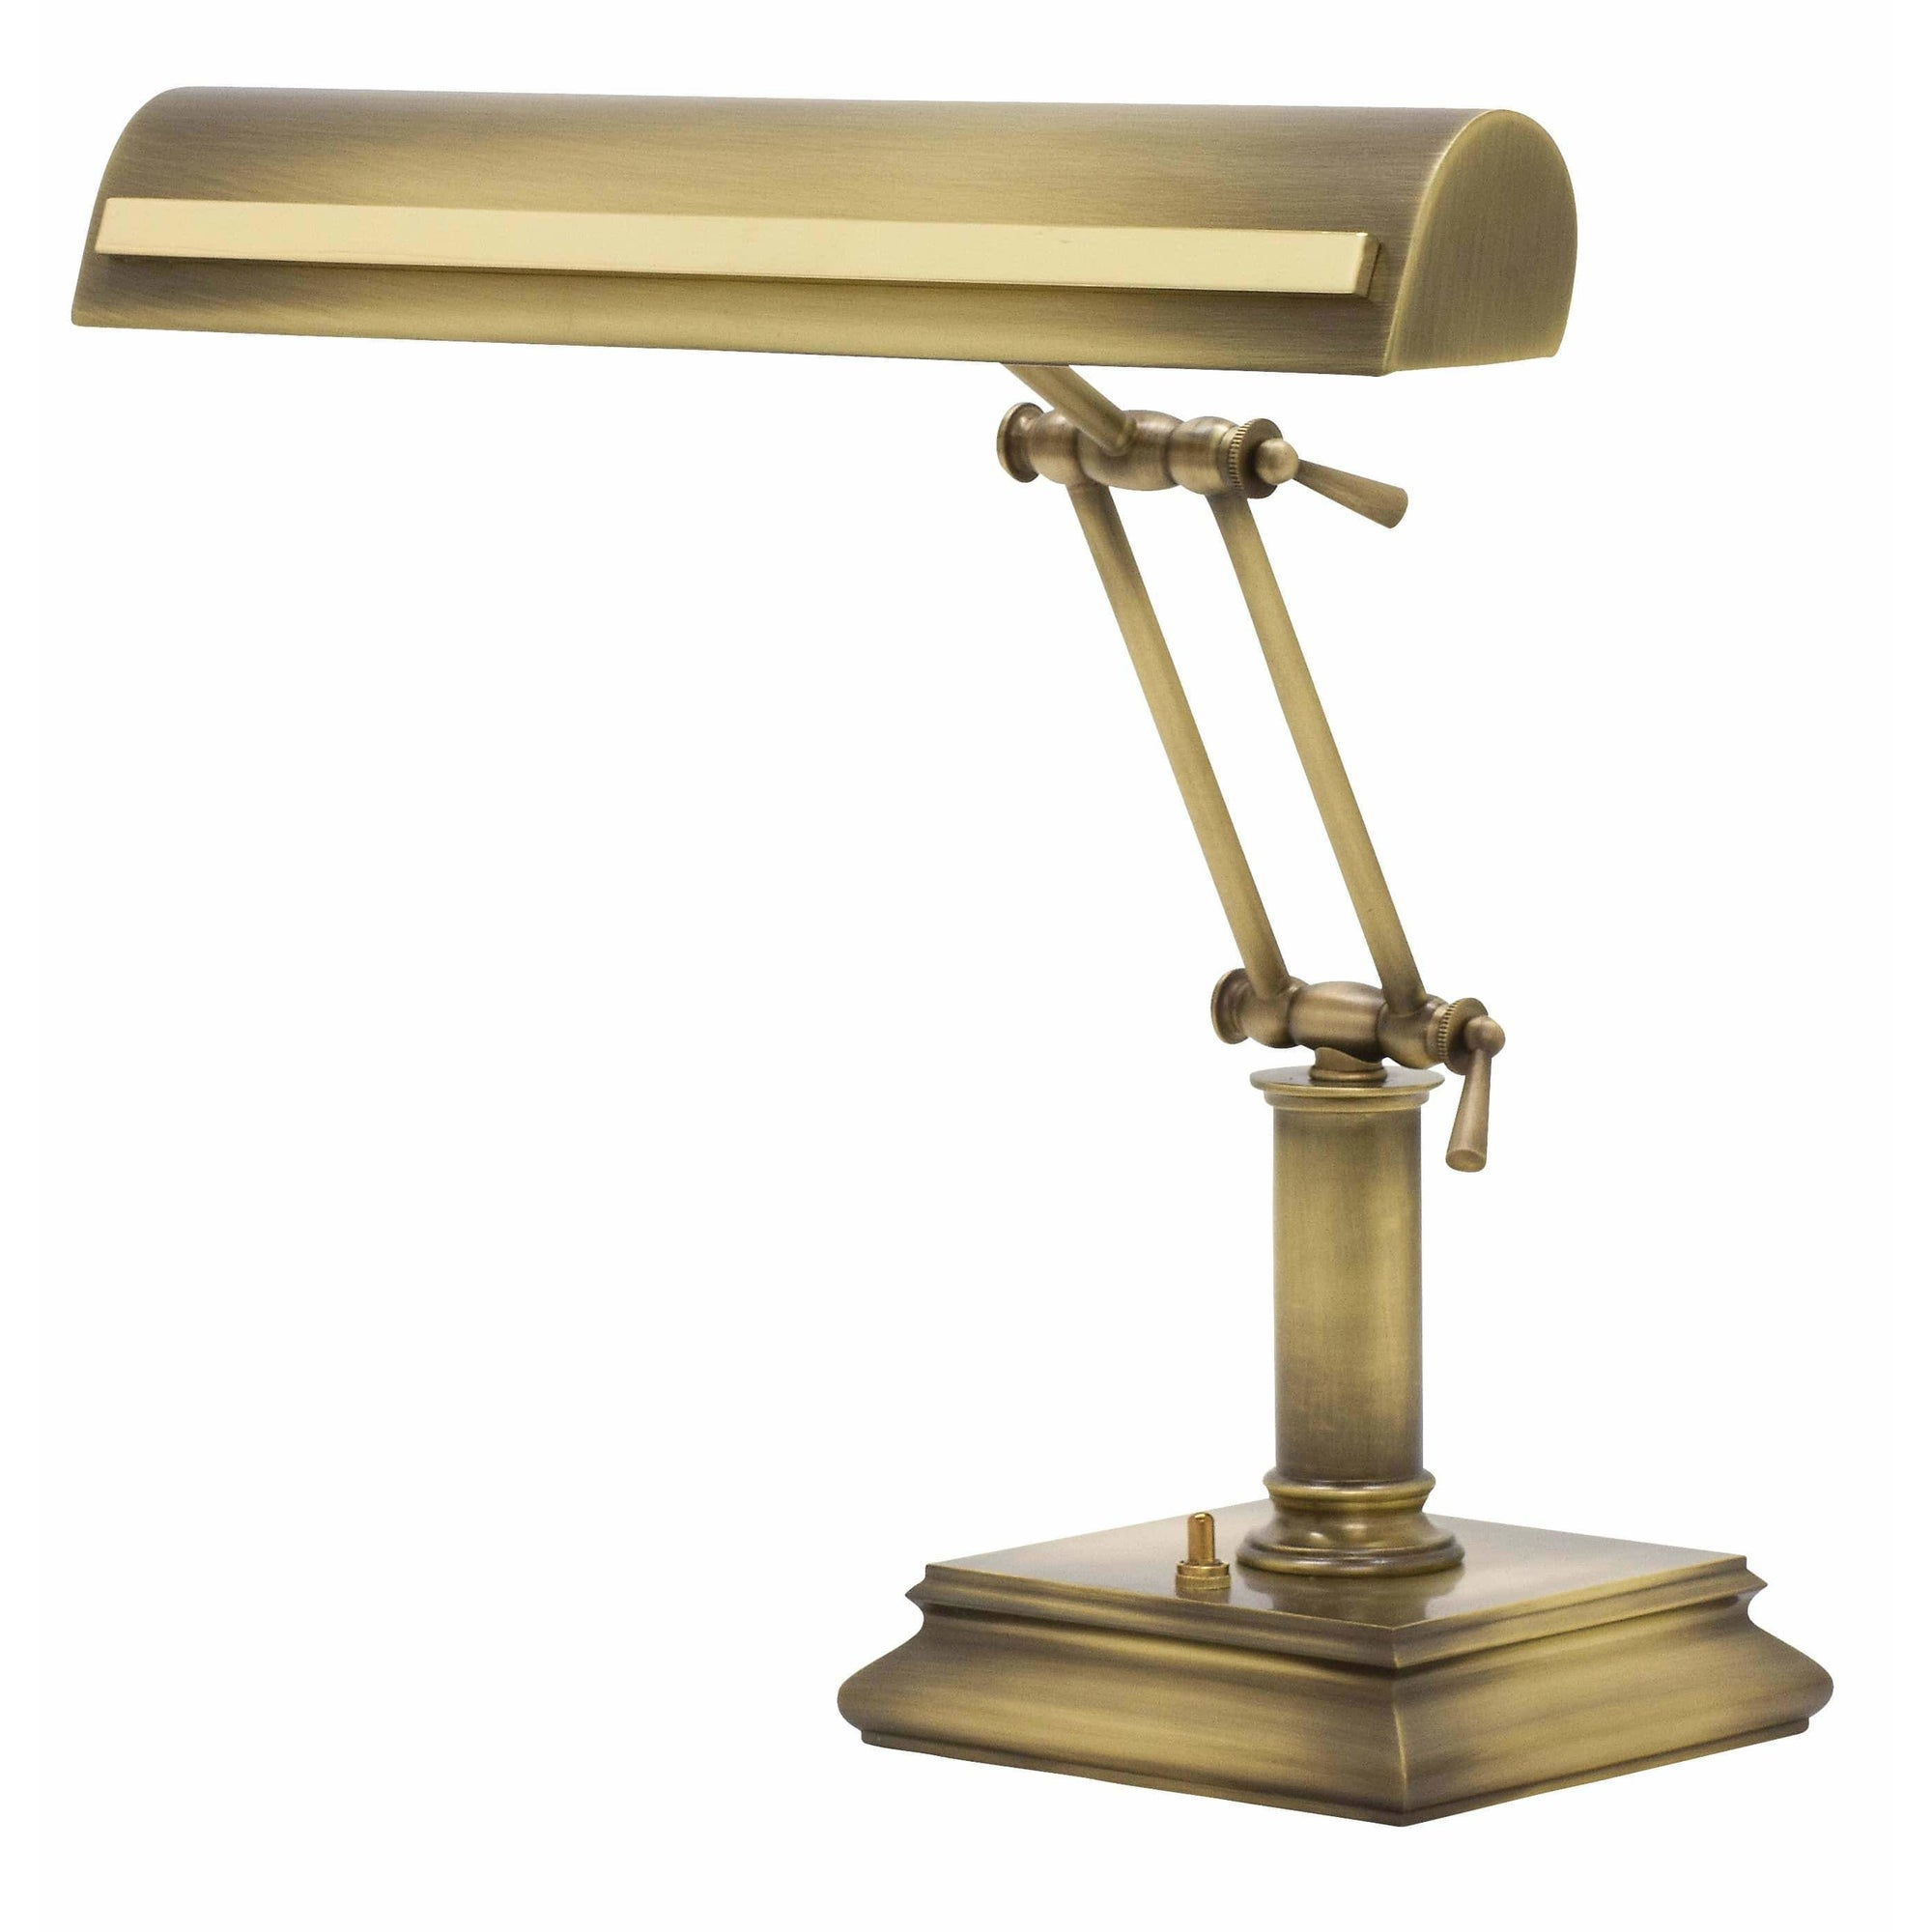 House Of Troy Desk Lamps Desk/Piano Lamp by House Of Troy PS14-201-AB/PB